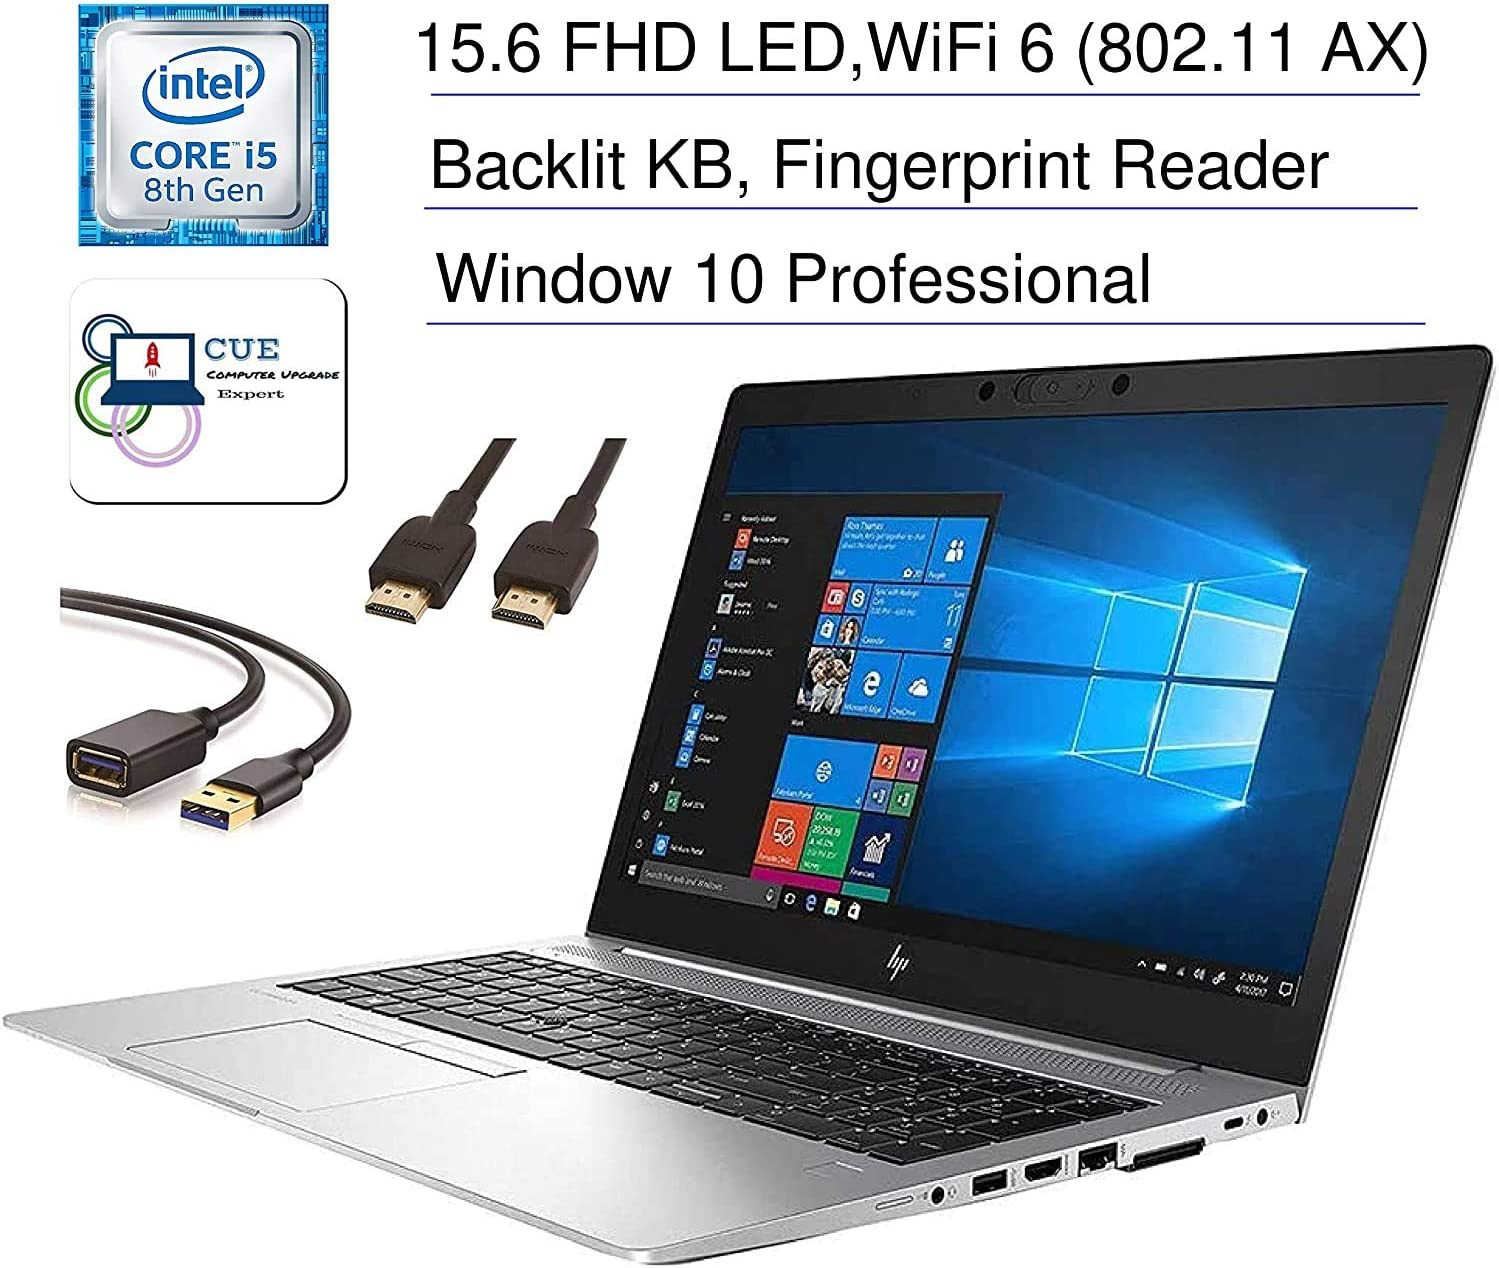 "HP Elitebook 850 G6 15.6"" Full HD FHD (1920x1080) Business Laptop (Intel Core i5-8365U) Fingerprint, Backlit, Type-C, Thunderbolt 3, HDMI, Windows 10 Pro + CUE Accessories (32GB DDR4, 1TB SSD)"